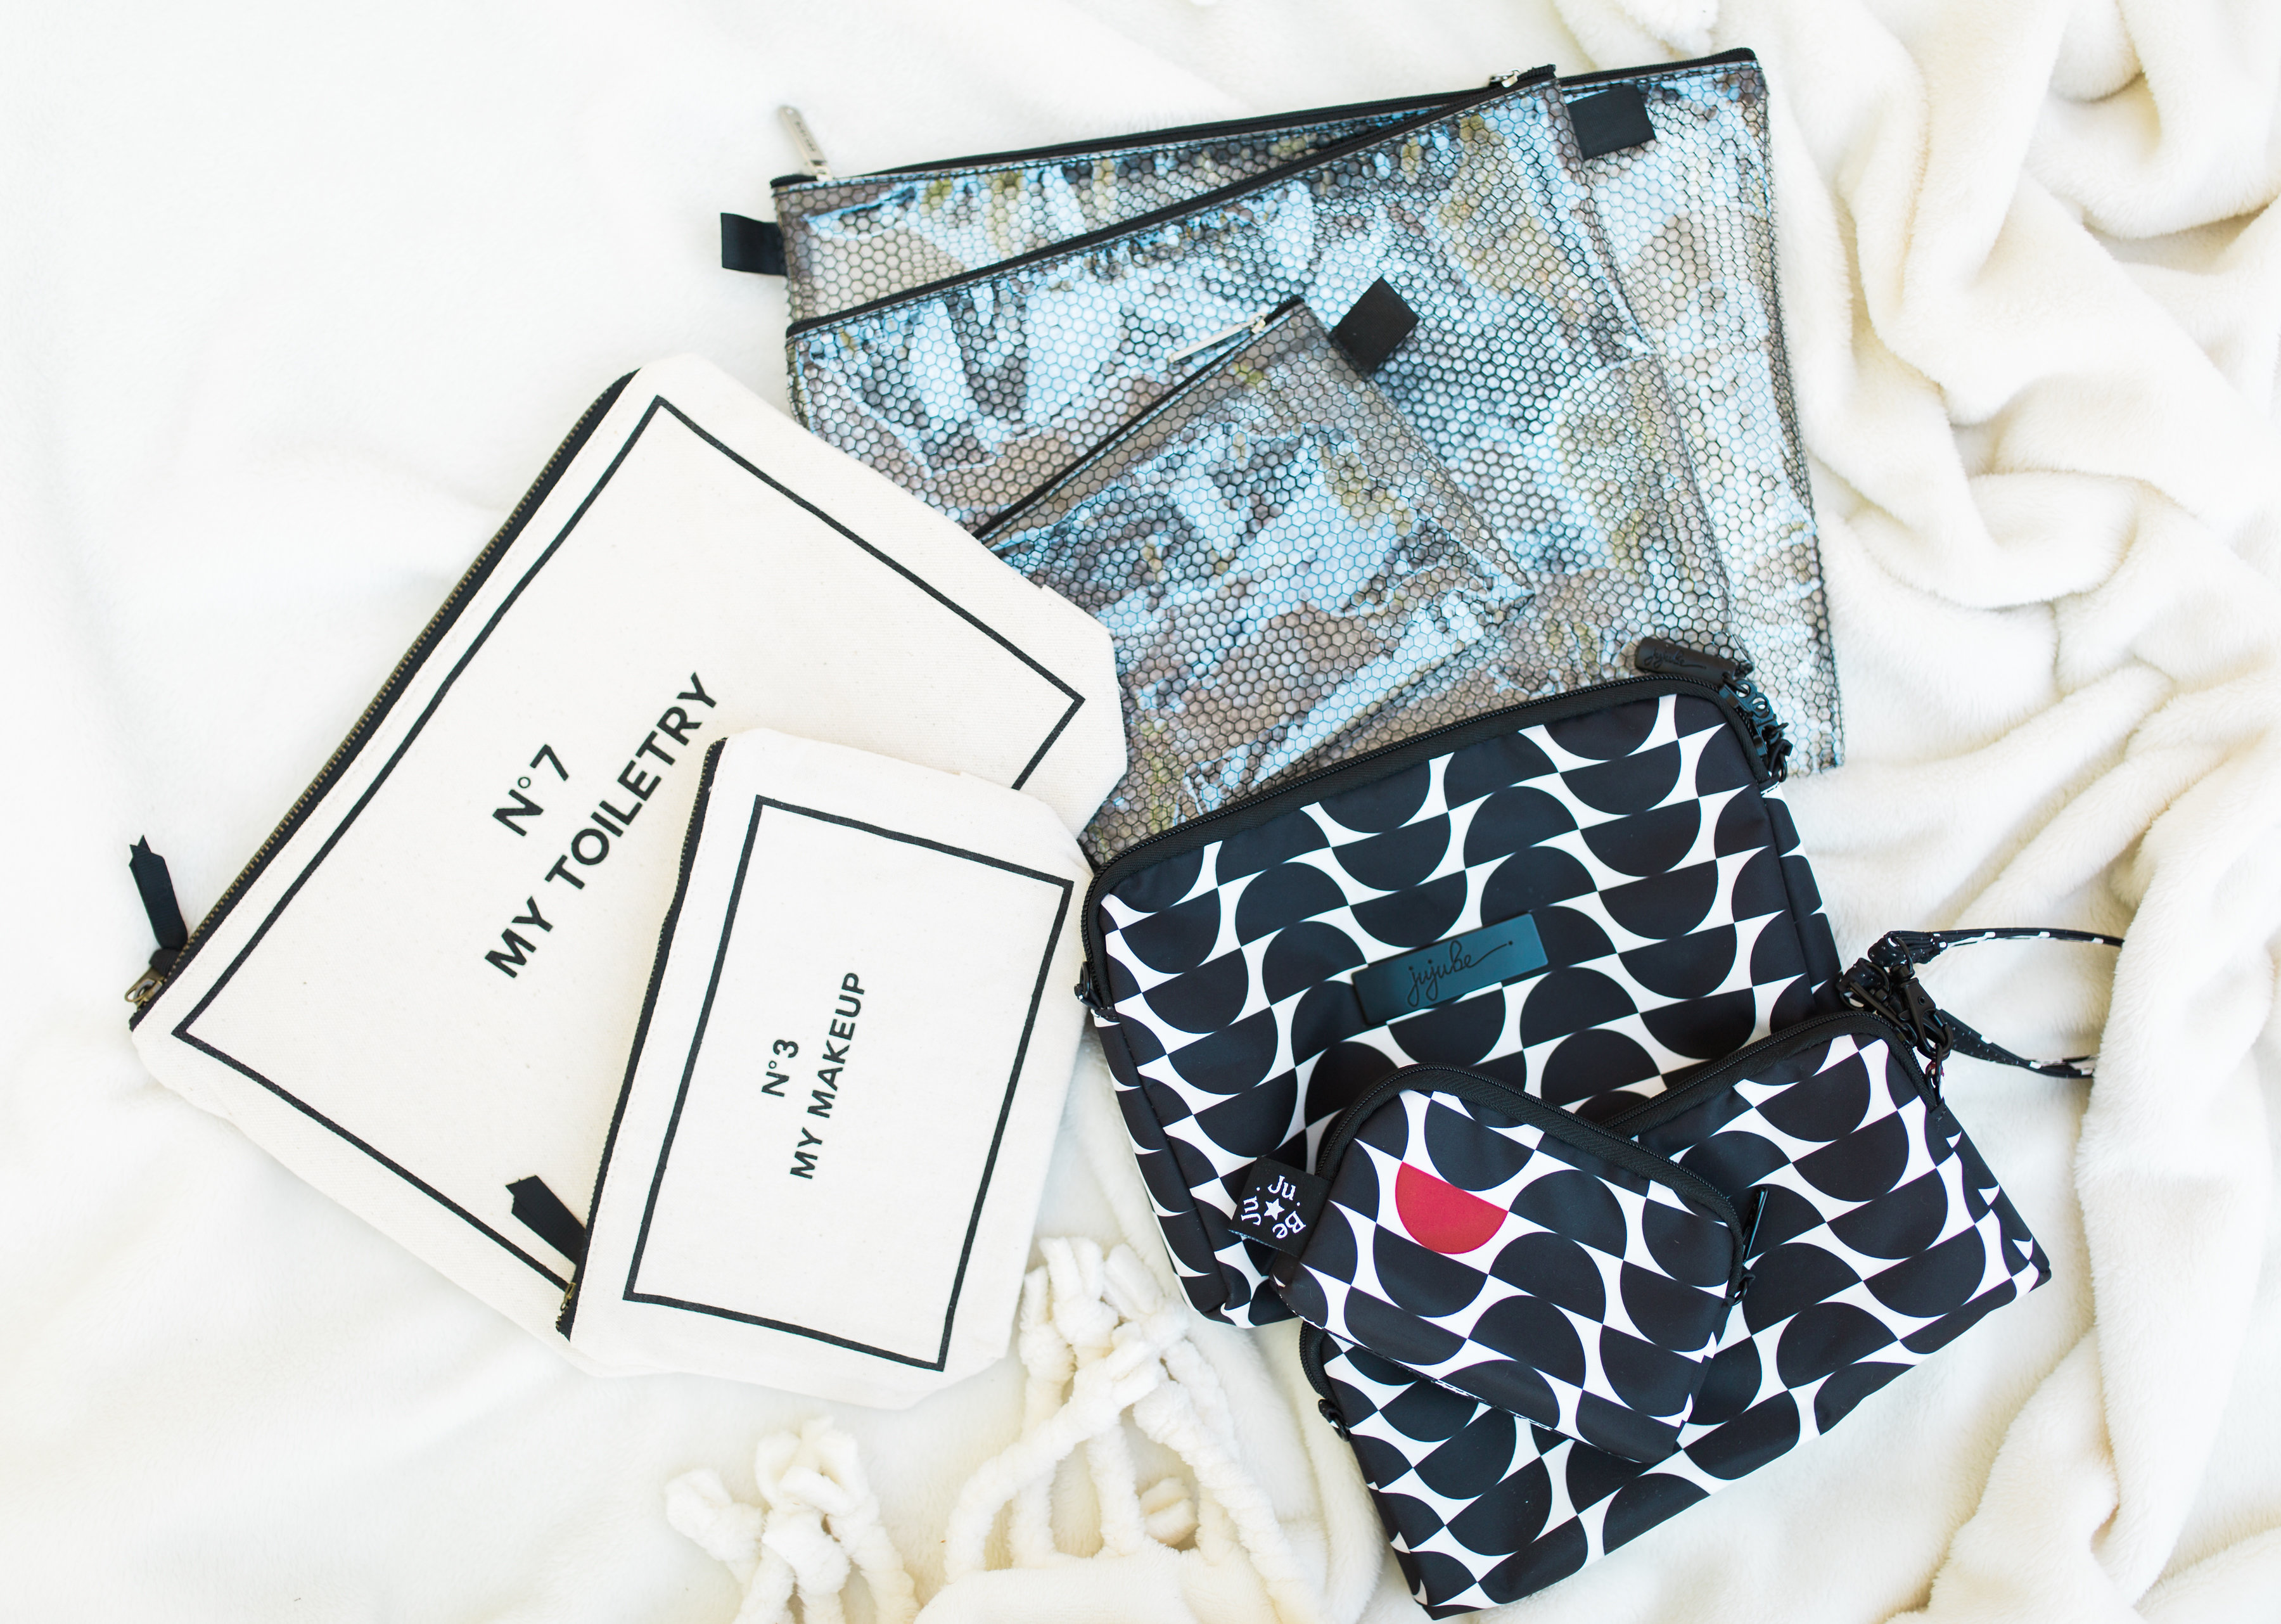 You're going to love my hack for an organized diaper bag! Y'all, diaper bag pouches, including cult favorite pouches that every mom swears by, for organization are the best. | glitterinc.com | @glitterinc